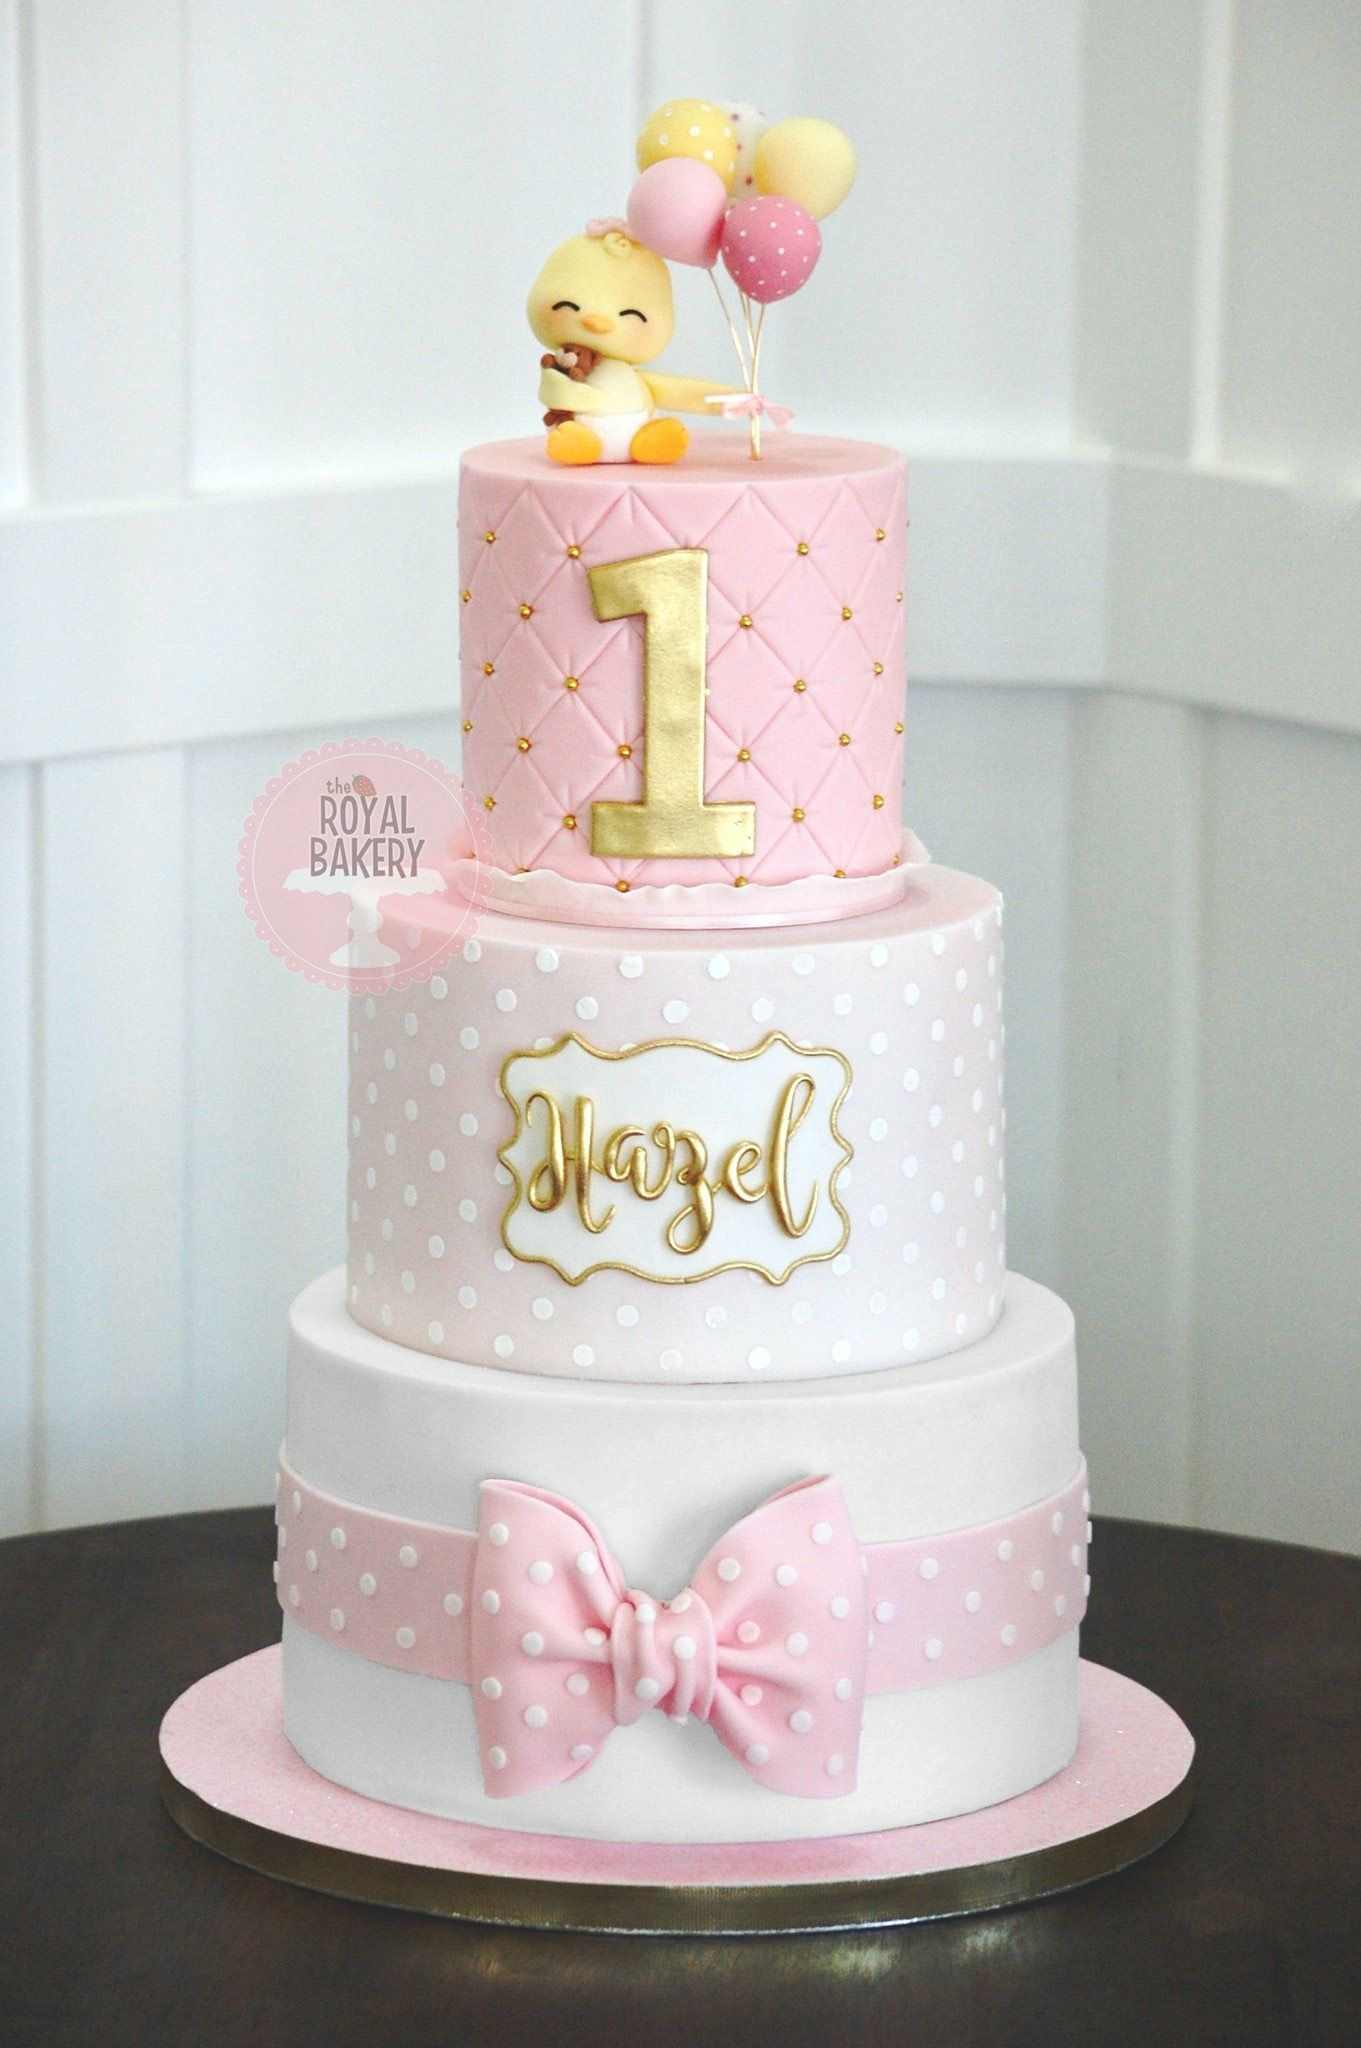 Magnificent Duck Cake 1St Birthday Cake For Girls Baby Birthday Cakes Personalised Birthday Cards Veneteletsinfo